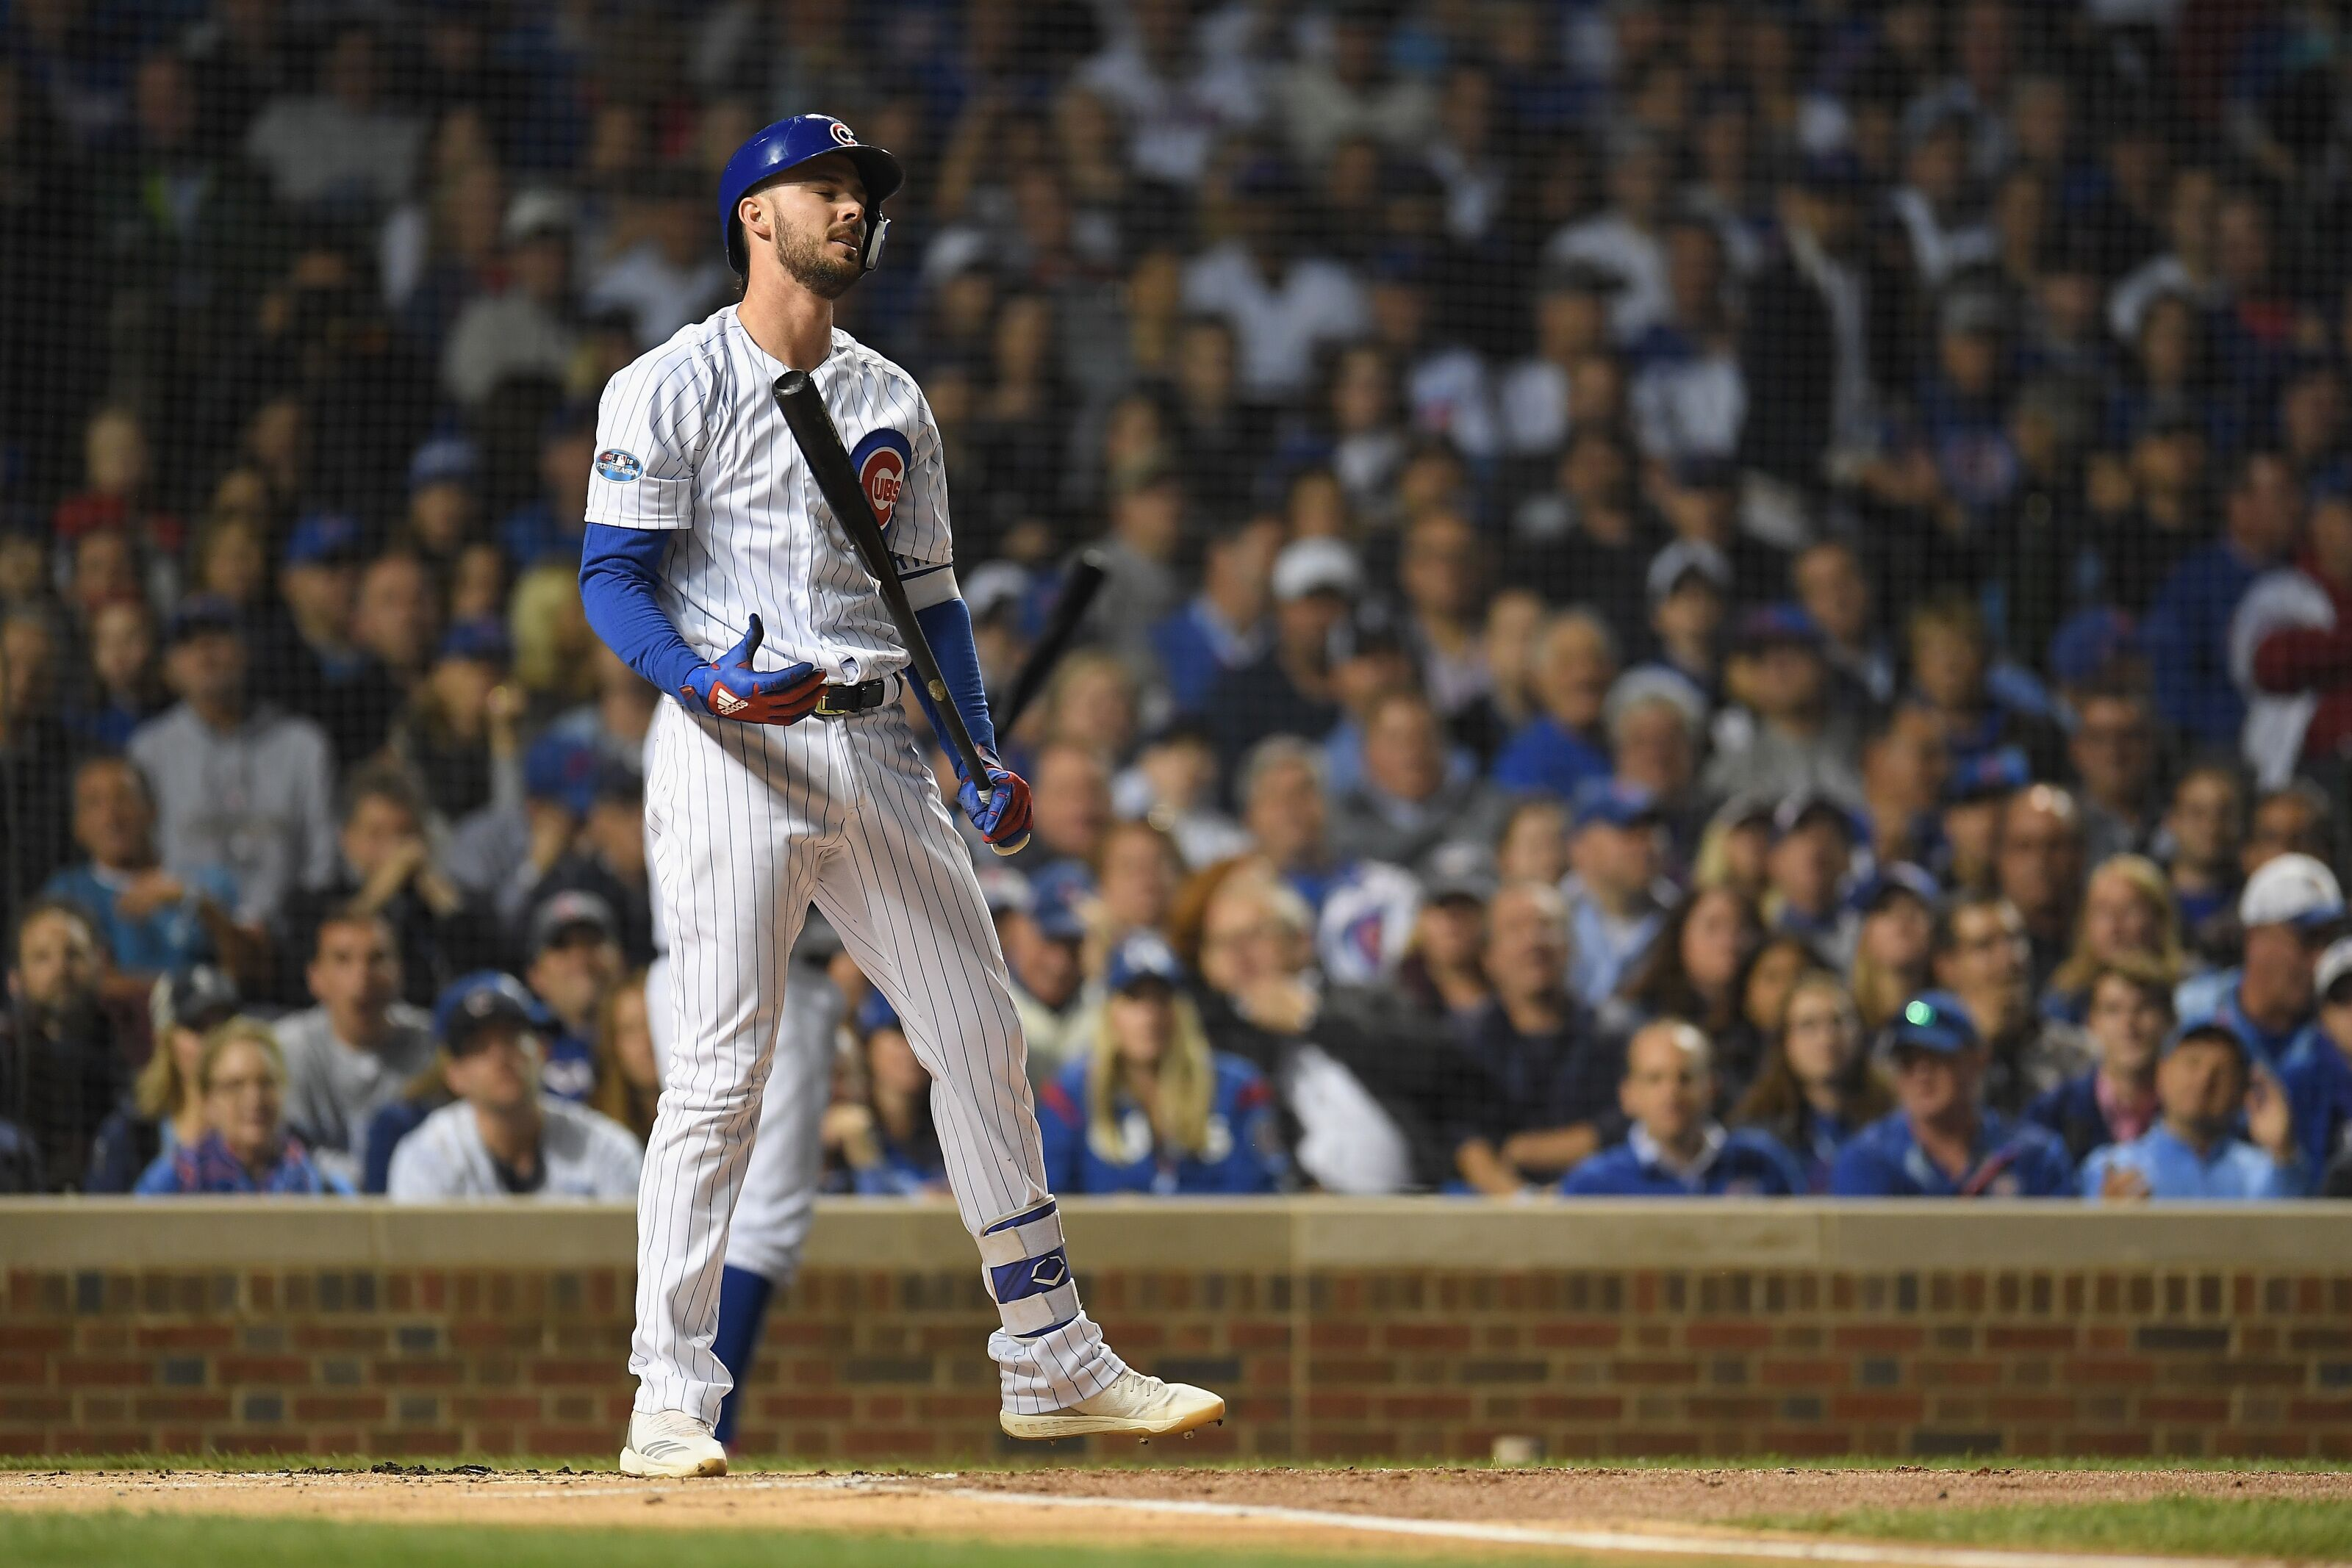 Chicago Cubs: Kris Bryant not ready for extension